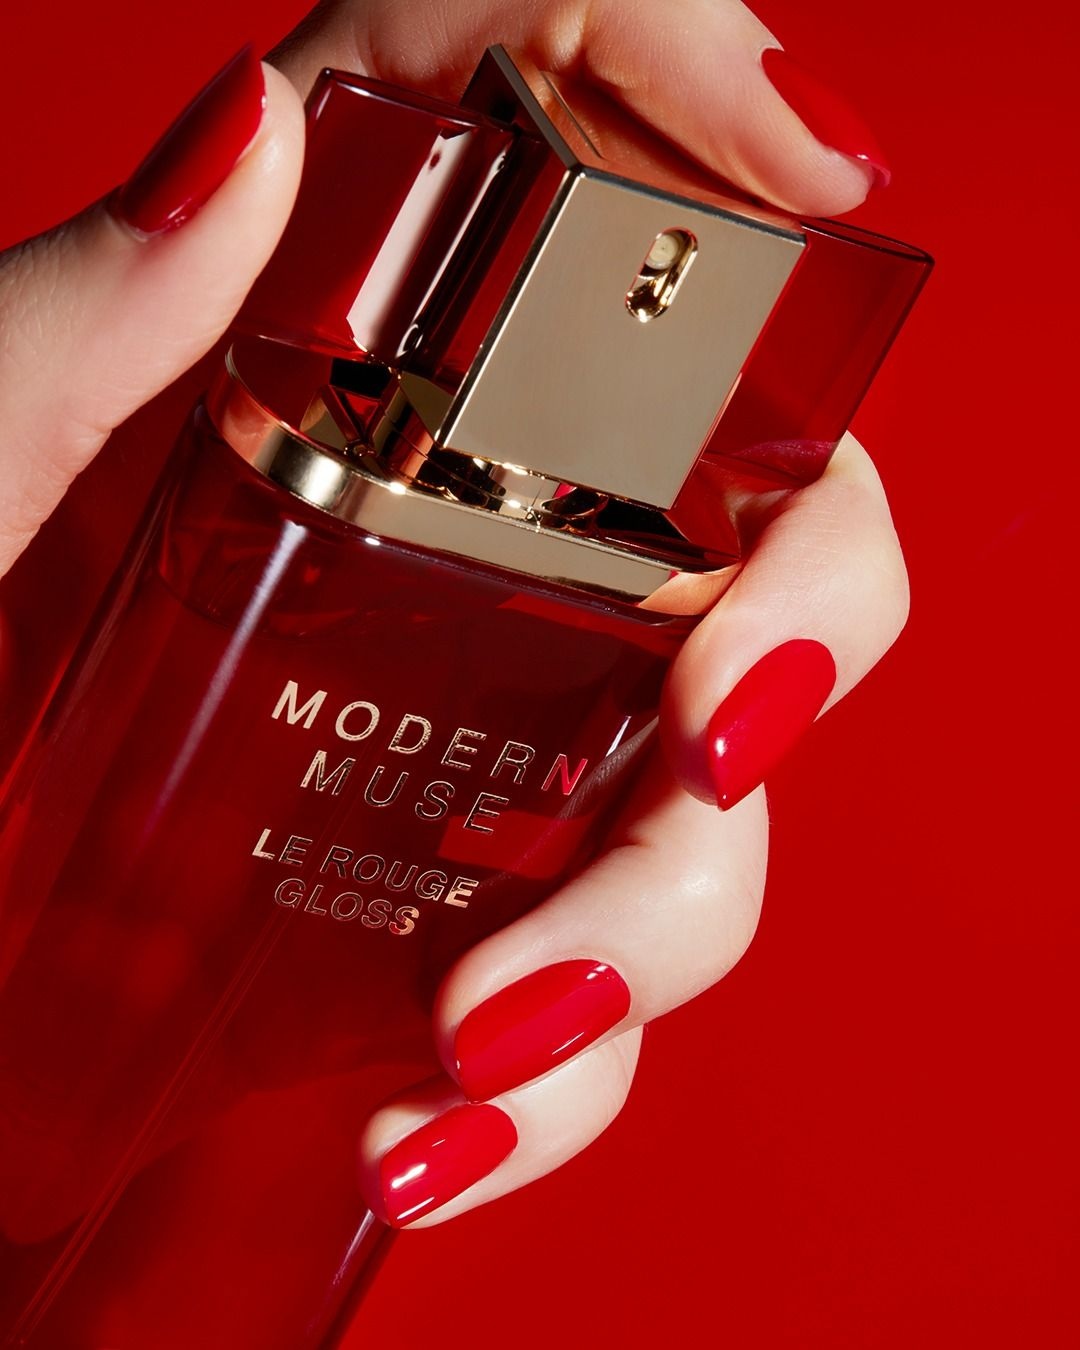 Le Rouge Gloss Fragrance Estee Stories Blog Esteelauder Com Modern Muse Le Rouge Gloss Estee Lauder Modern Muse Perfume